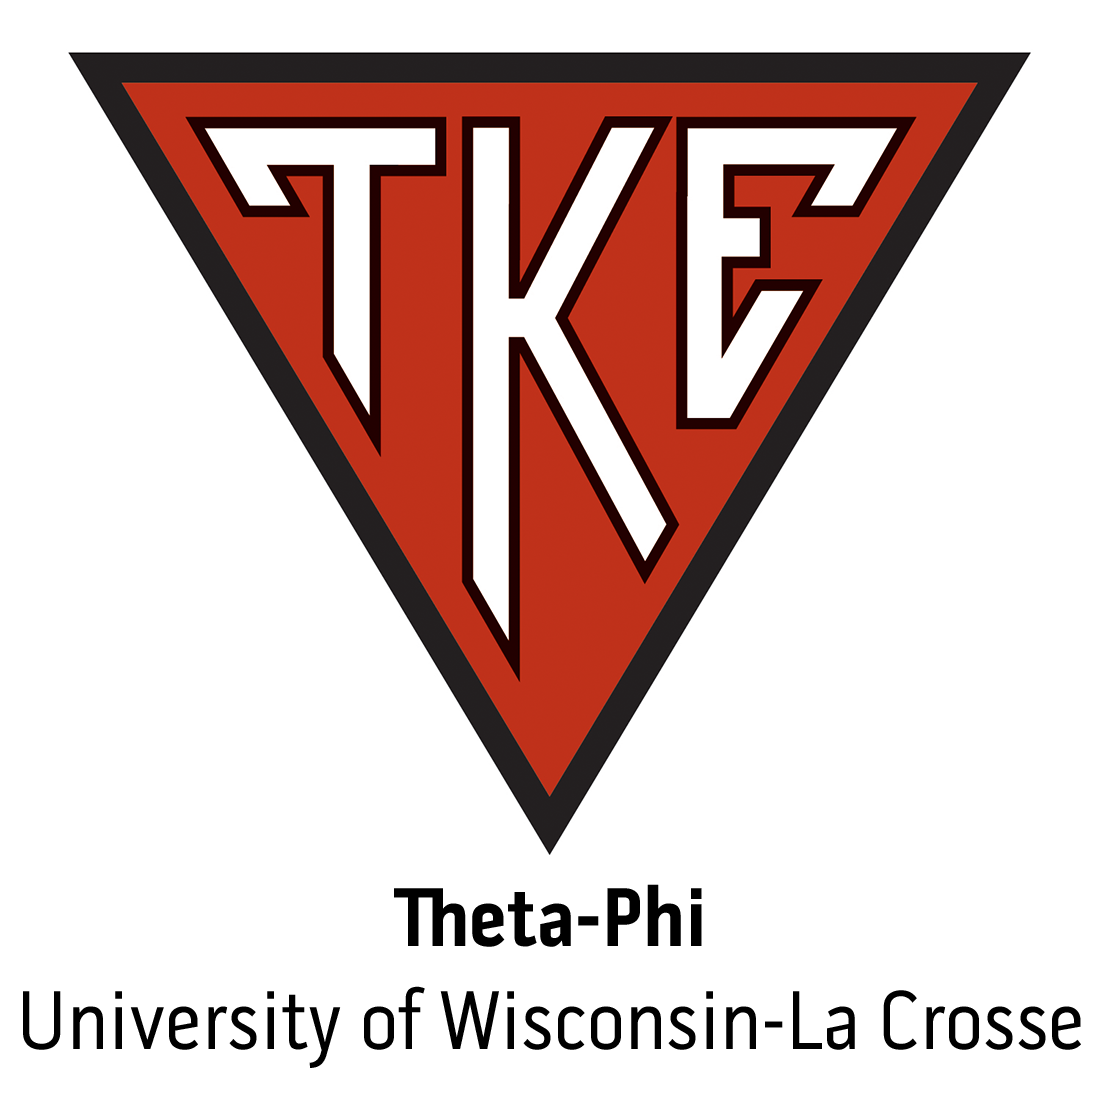 Theta-Phi Chapter at University of Wisconsin-La Crosse